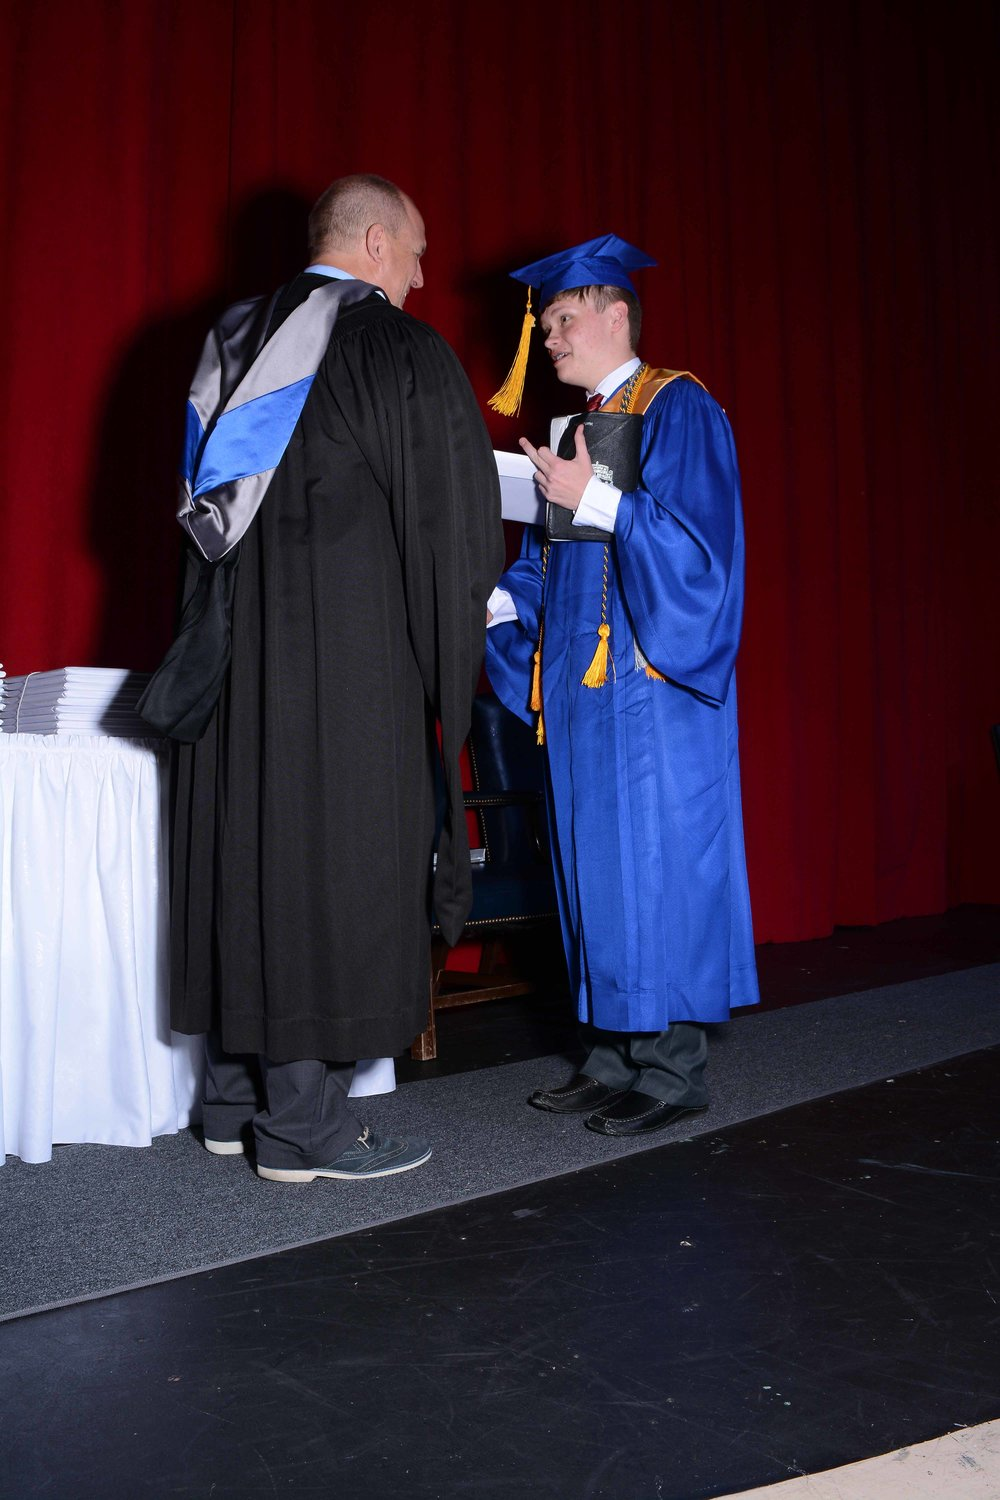 May14 Commencement02.jpg